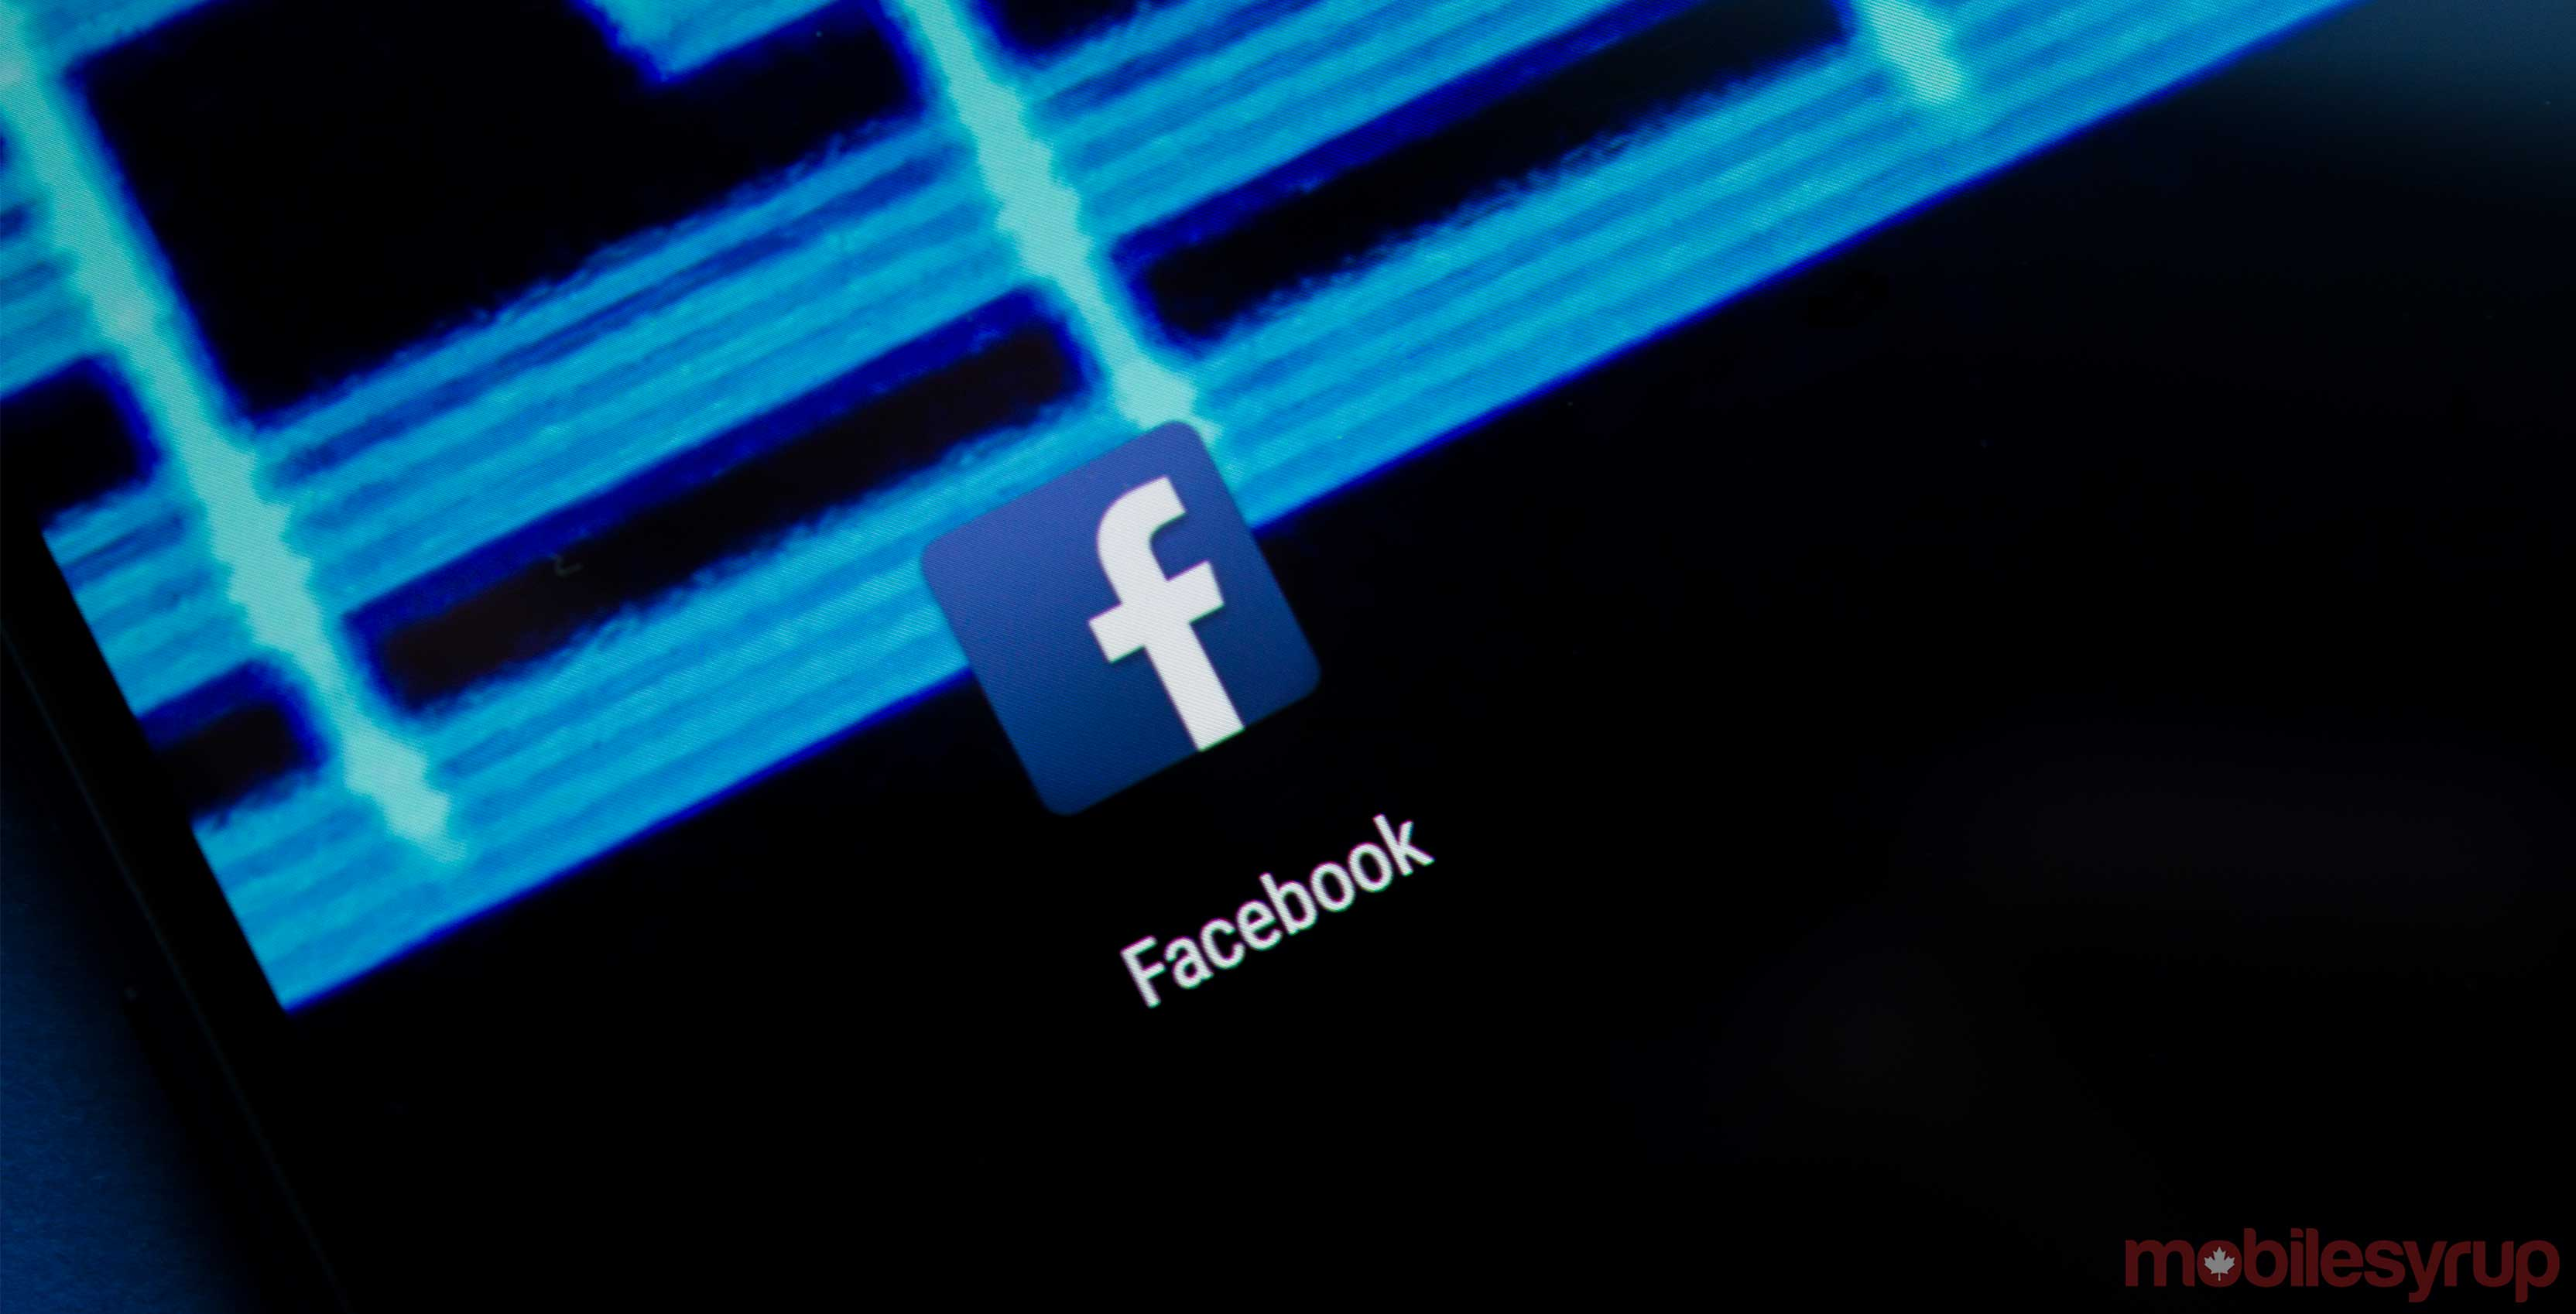 Facebook rolls out new tools to support 'off-Facebook' activity transparency